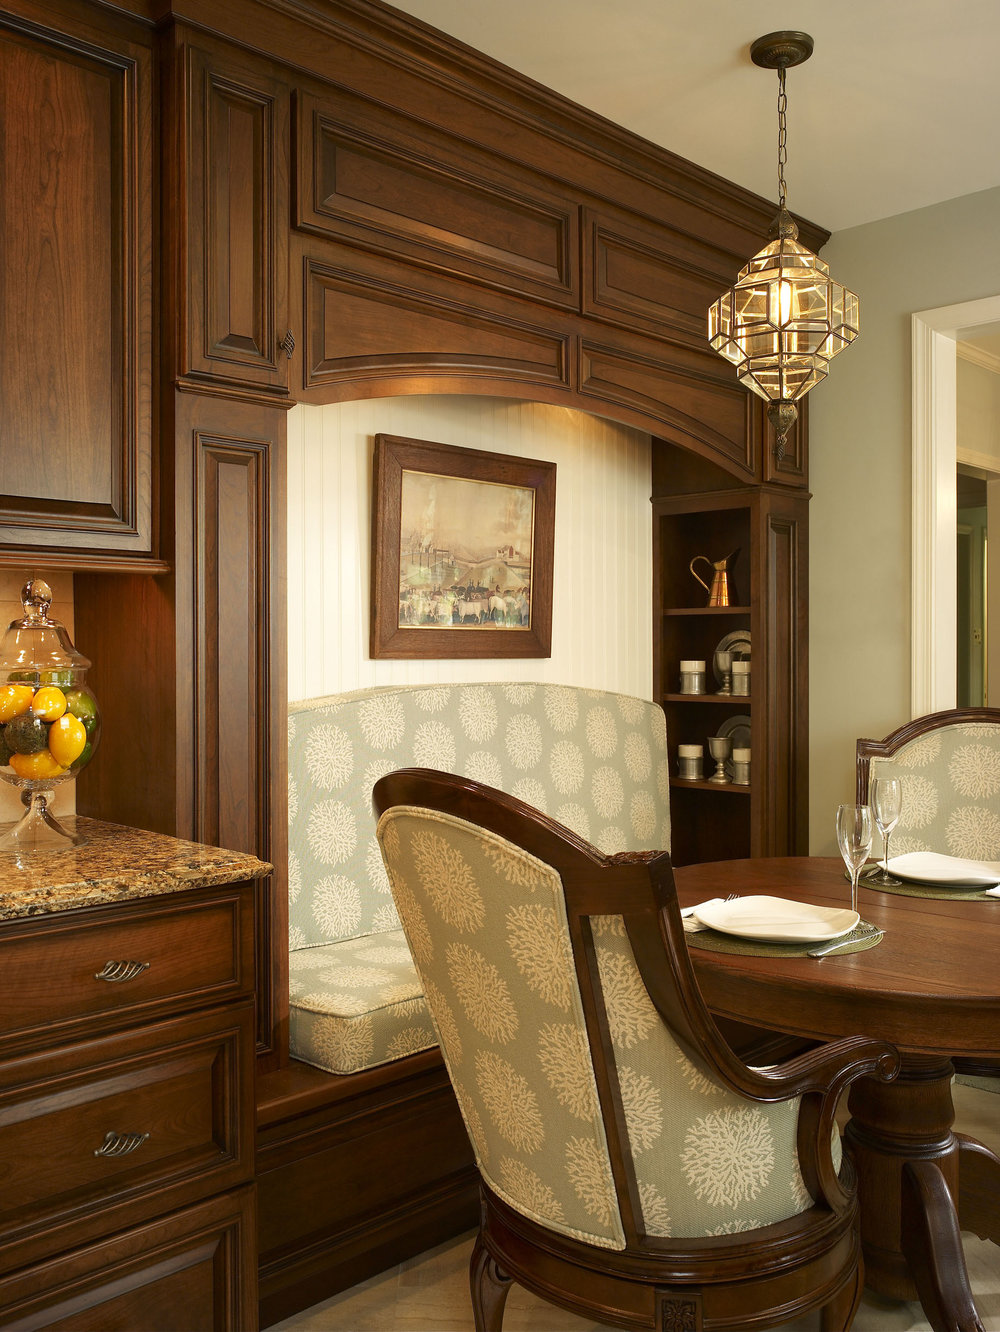 Custom designed eat-in nook with hidden storage in cabinet panels.